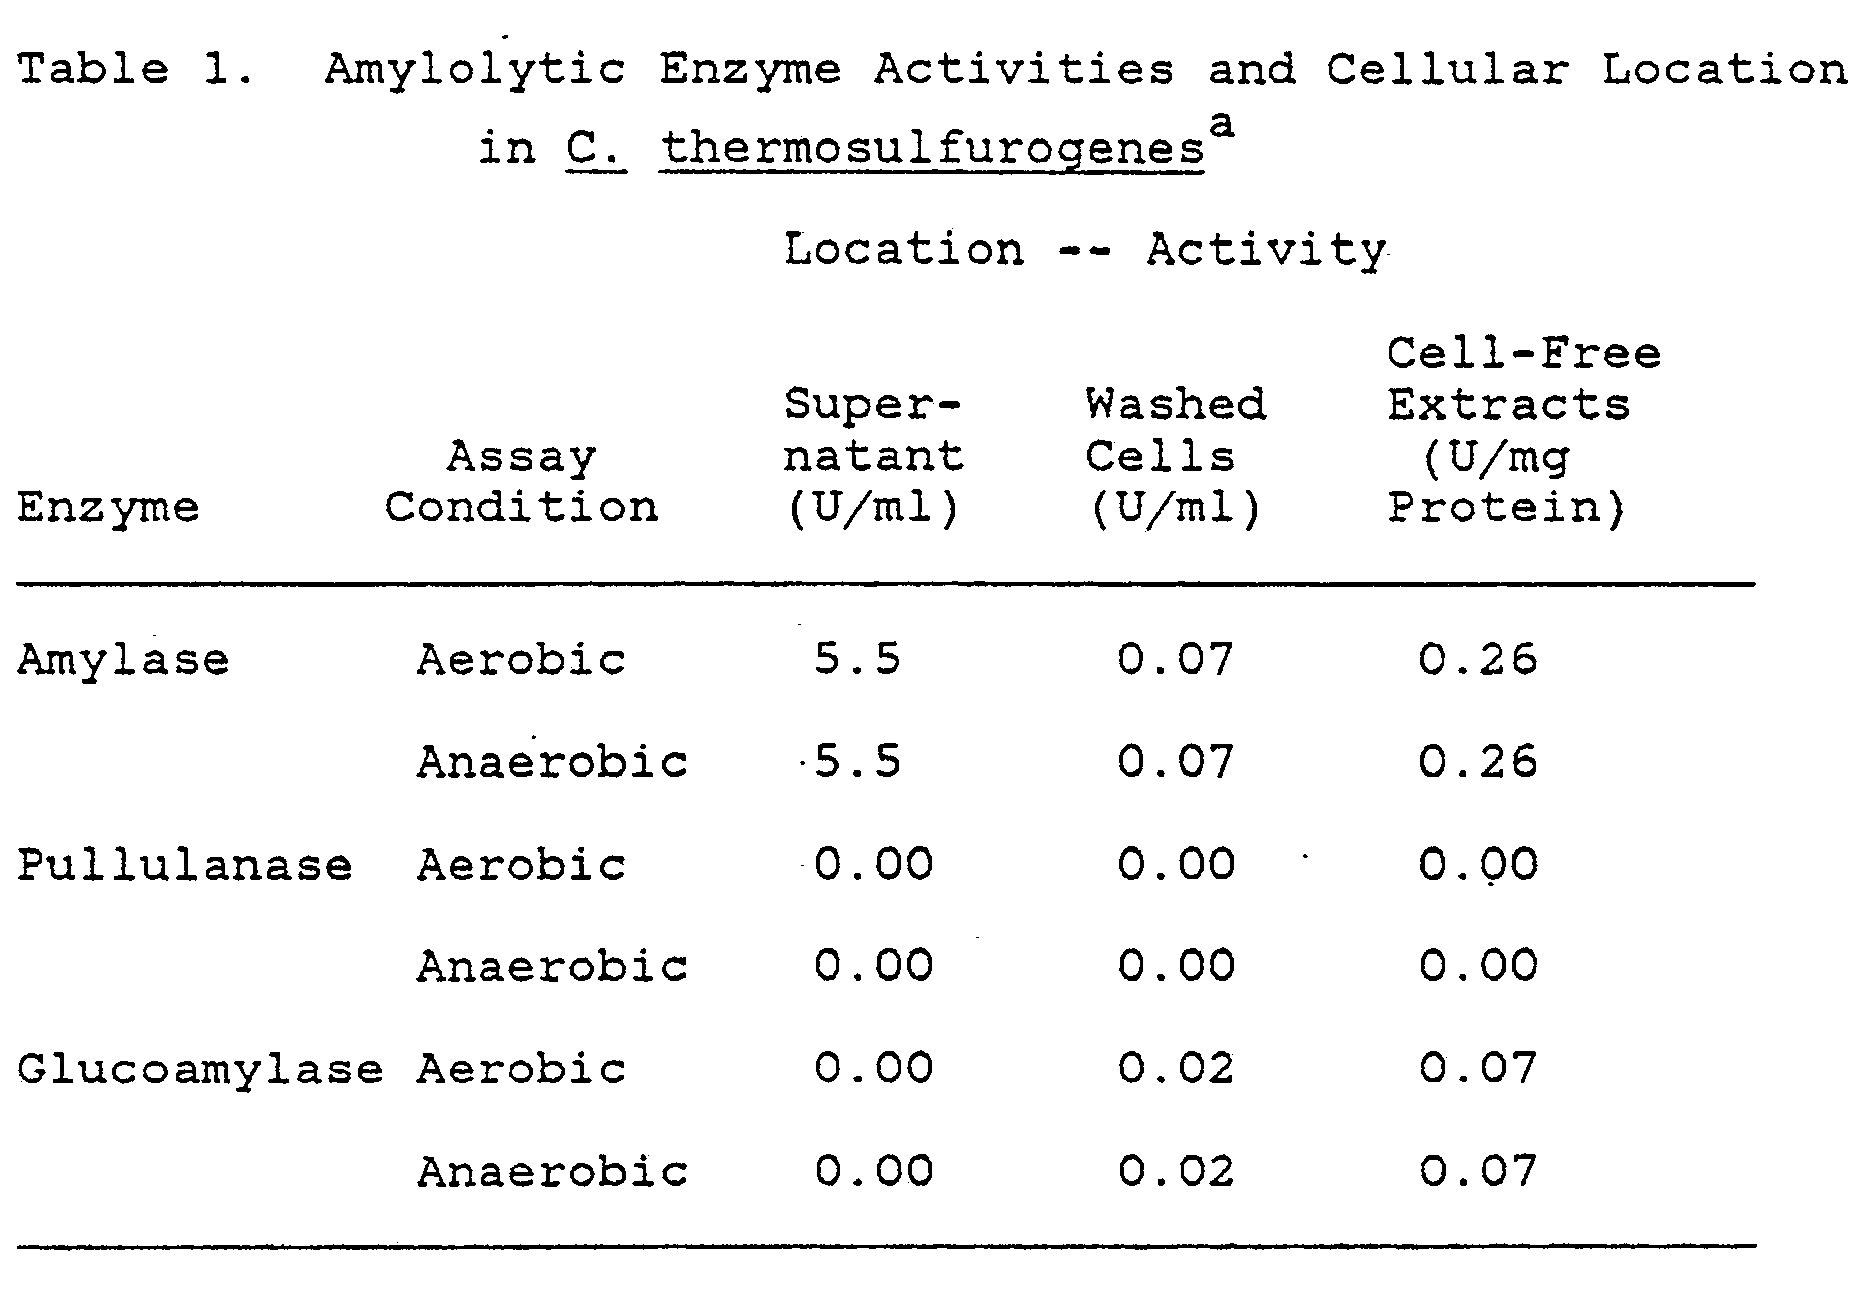 an analysis of the enzyme amylase which catalyze the hydrolysis of starch to maltose Enzyme hydrolysis of starch catalysis and to demonstrate enzyme-catalyzed hydrolysis of starch using on hydrolysis of starch by enzyme amylase.